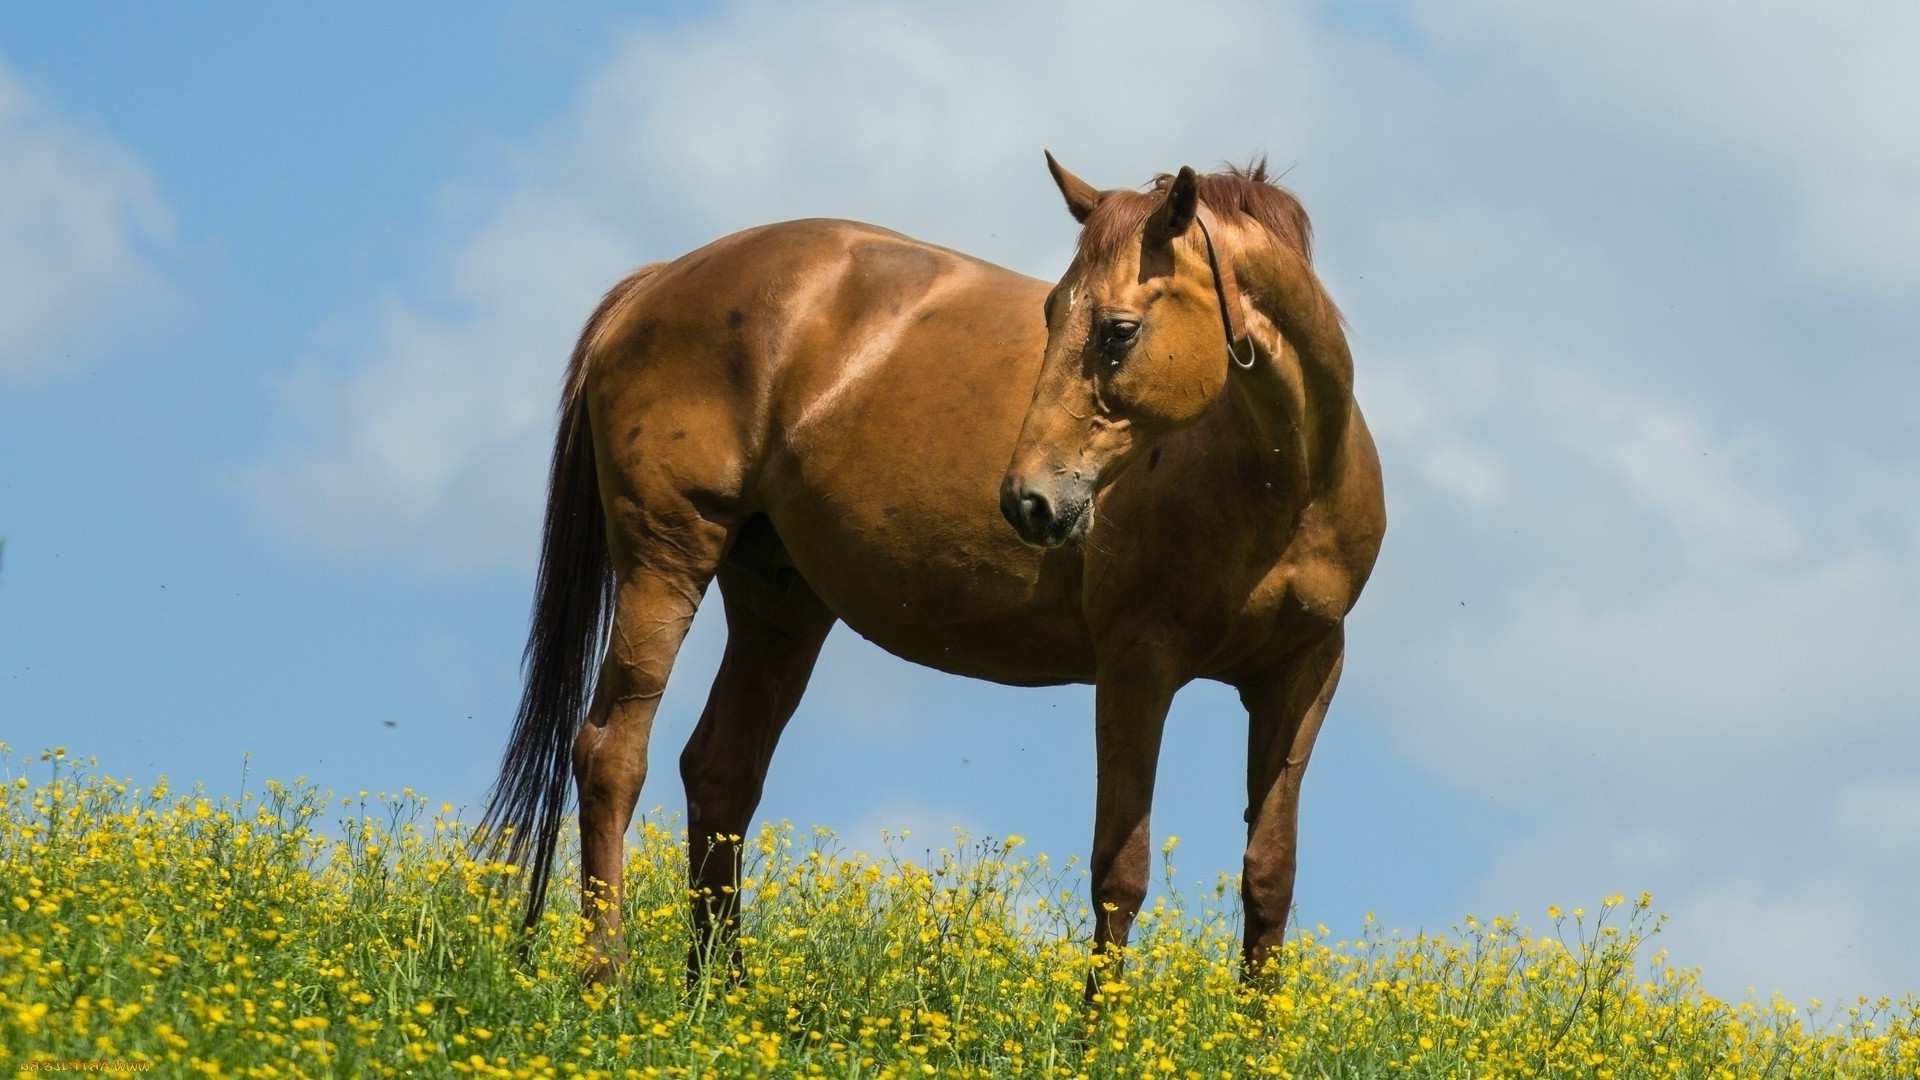 Animal Wallpaper Full Hd Animals Horse Yellow Flowers Wallpapers Hd Desktop And